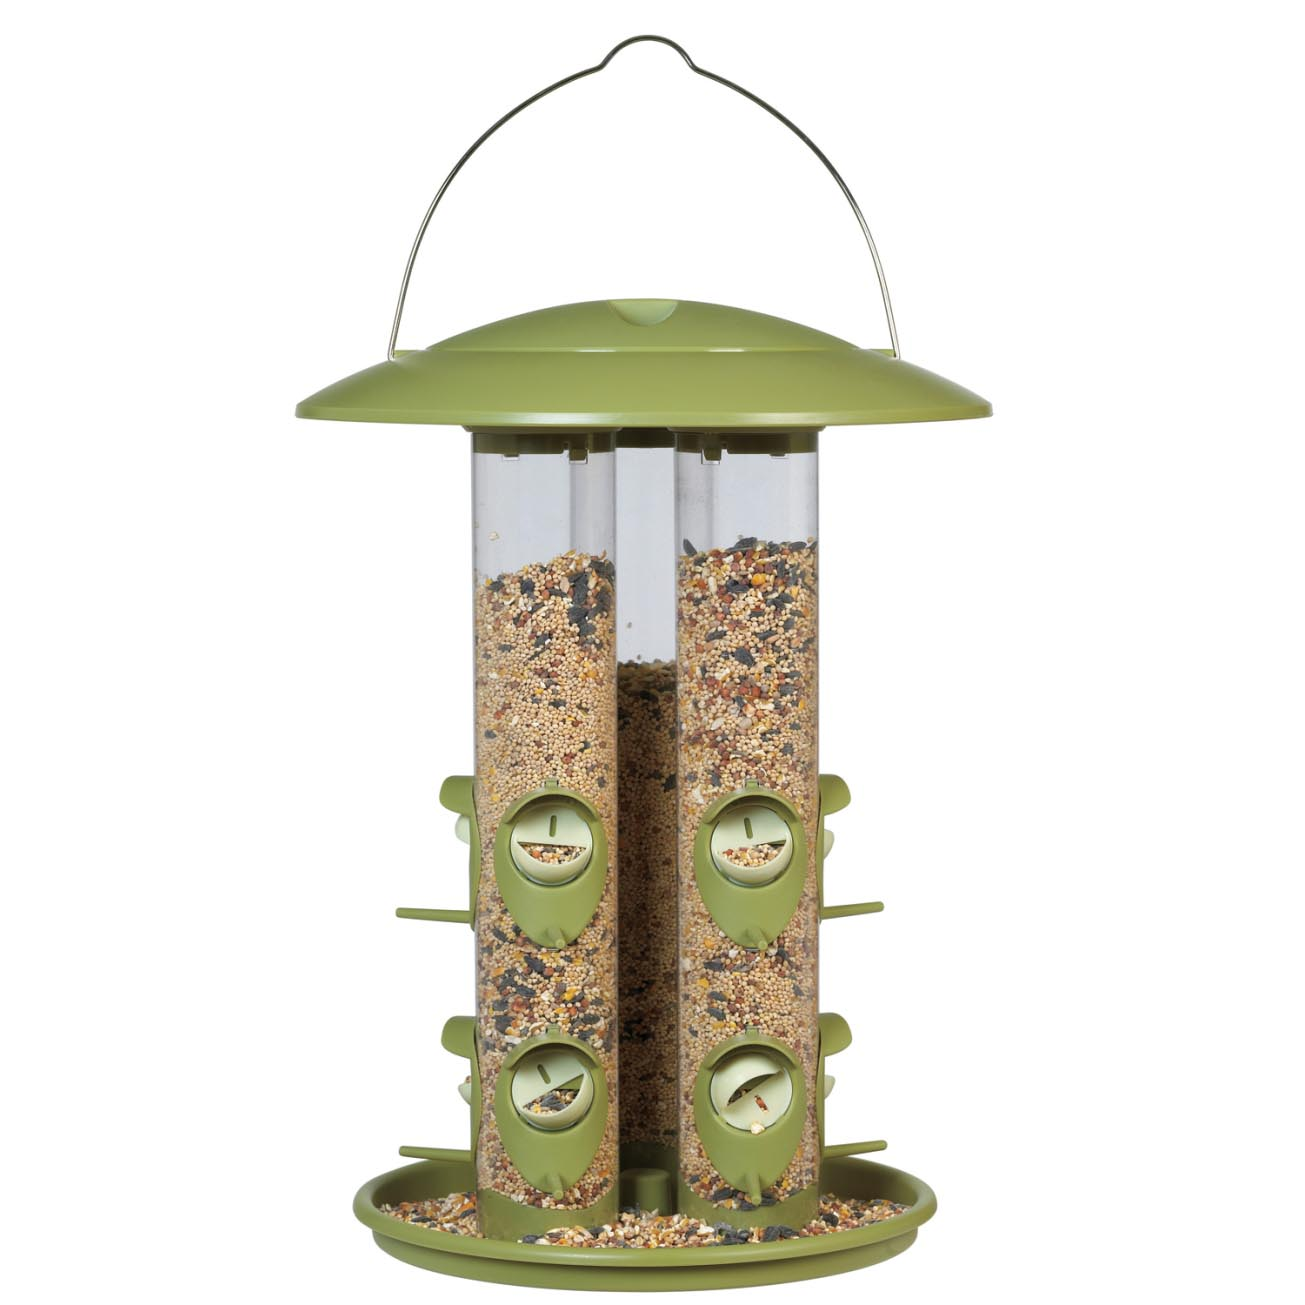 Deck Bird Feeder Hanger